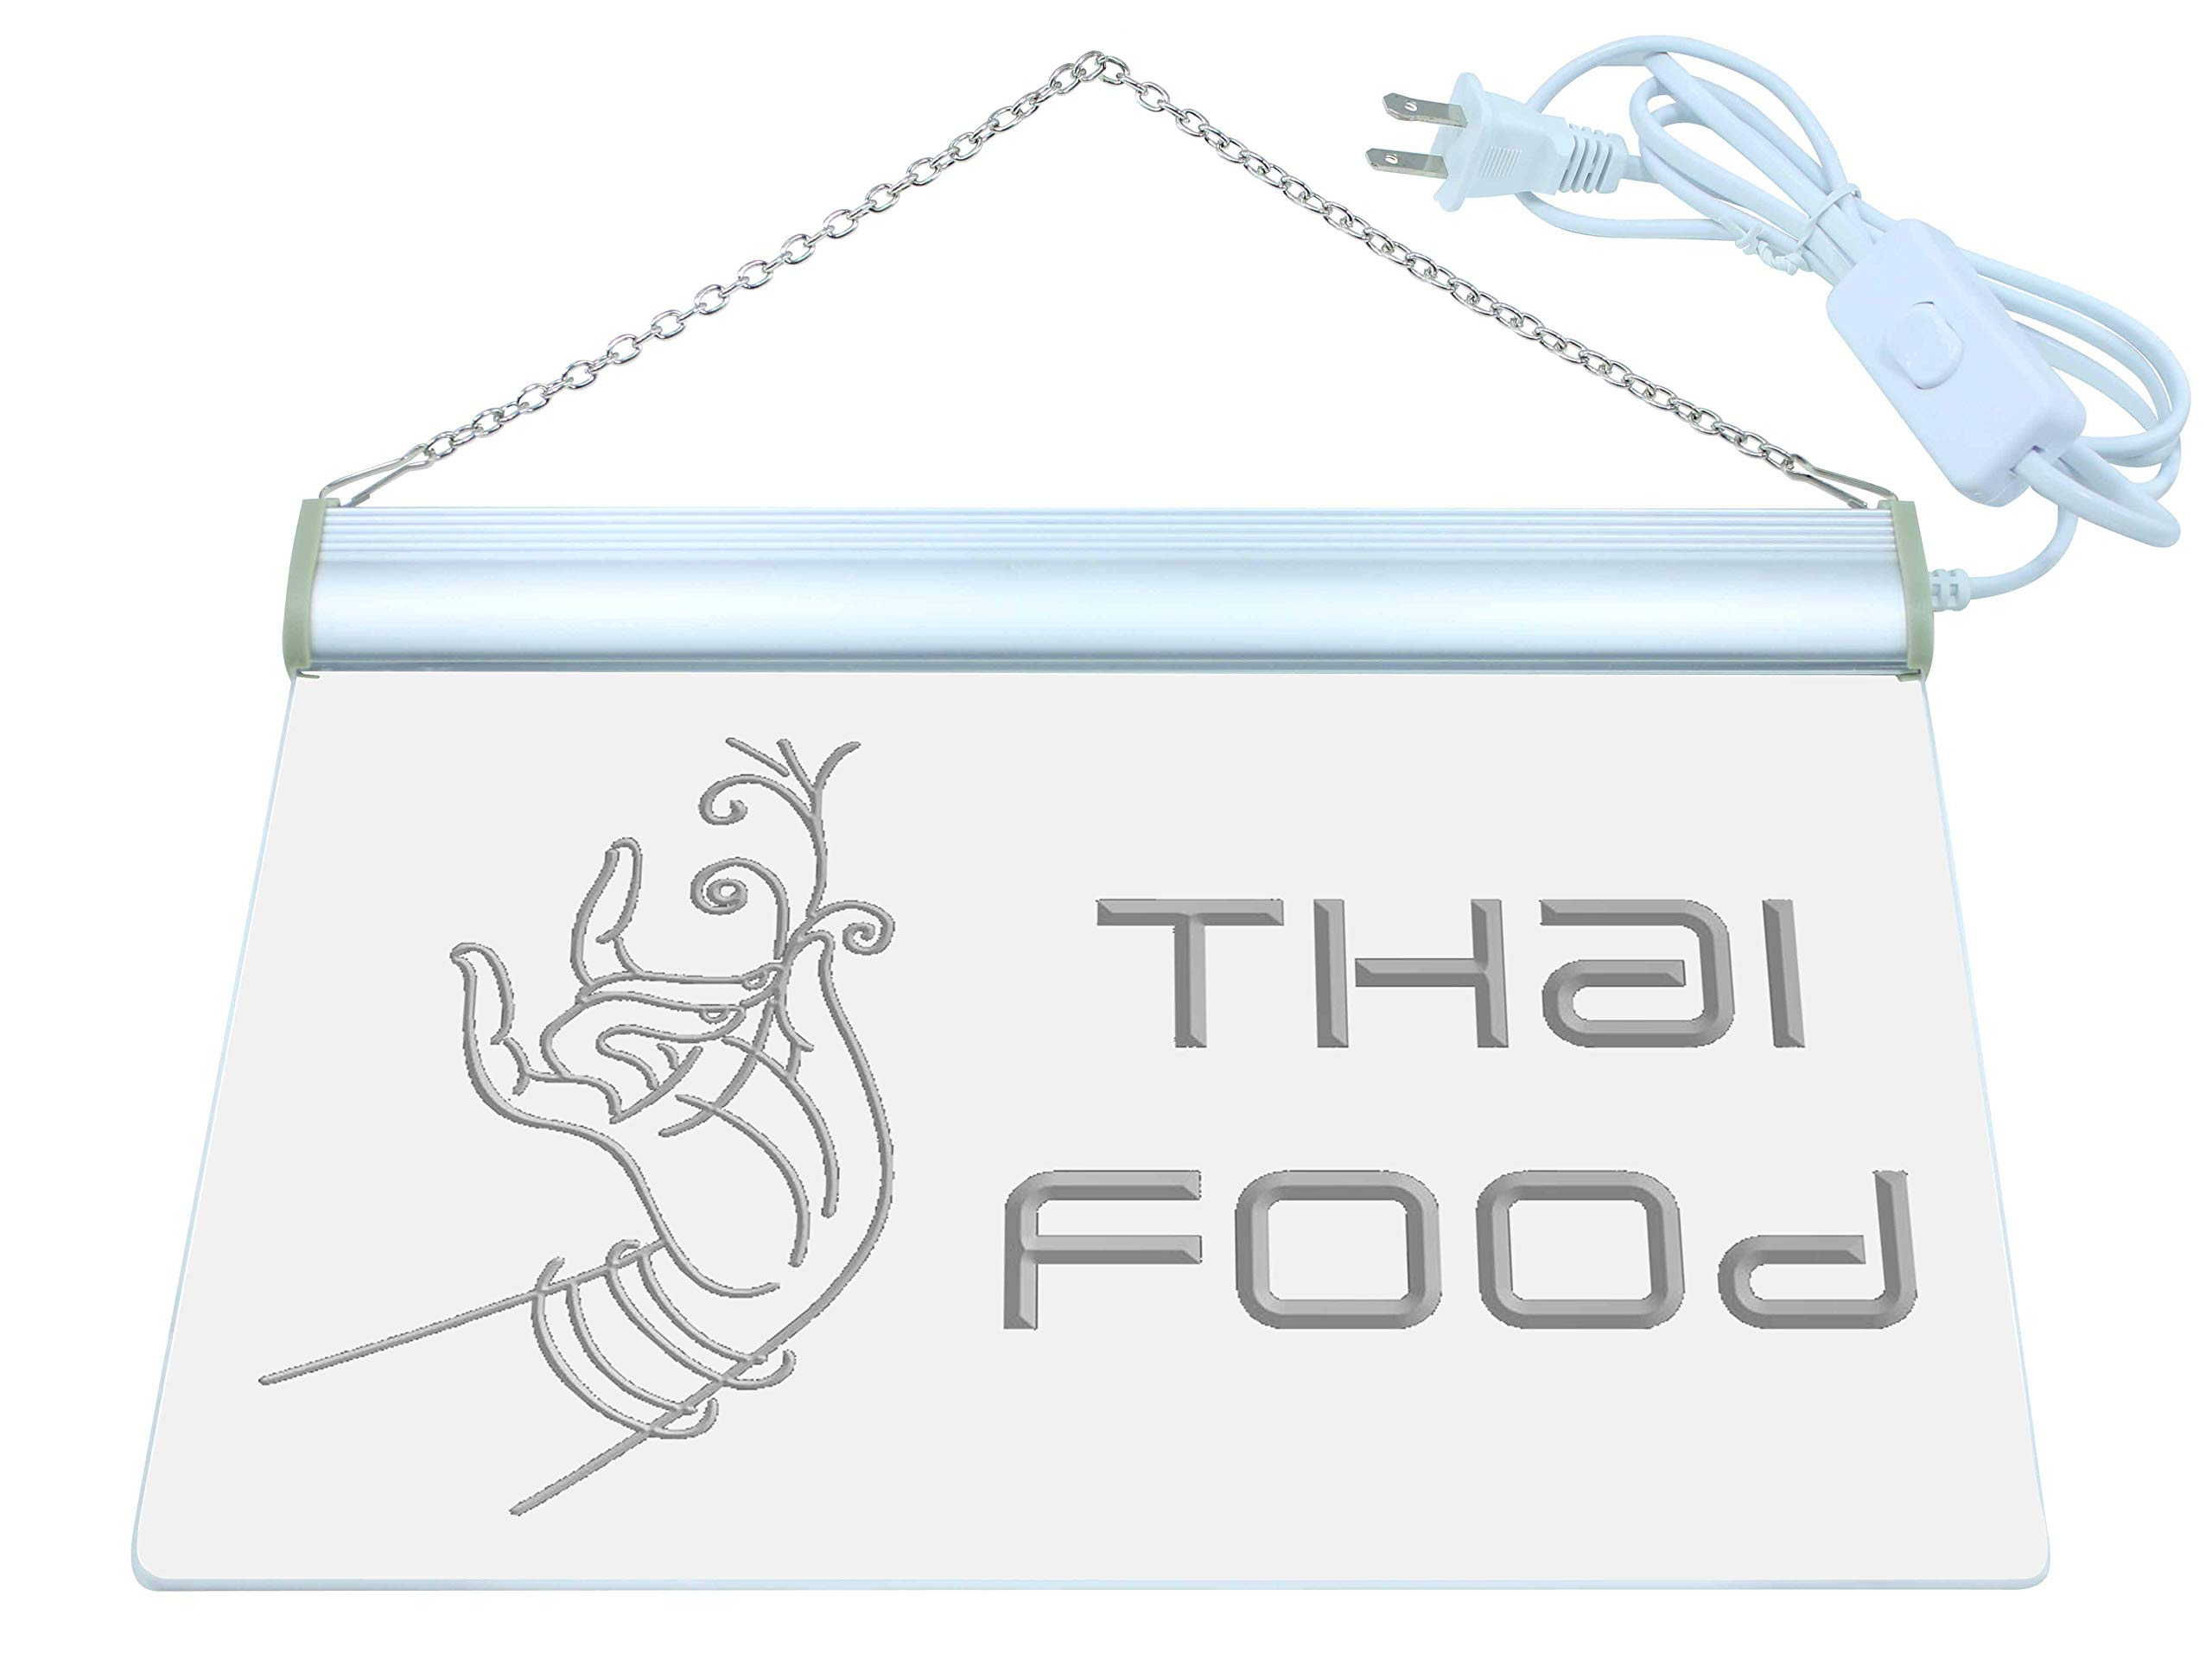 ADV PRO Thai Food Thailand Restaurant Cafe LED Neon Sign Blue 24'' x 16'' st4s64-i977-b by ADV PRO